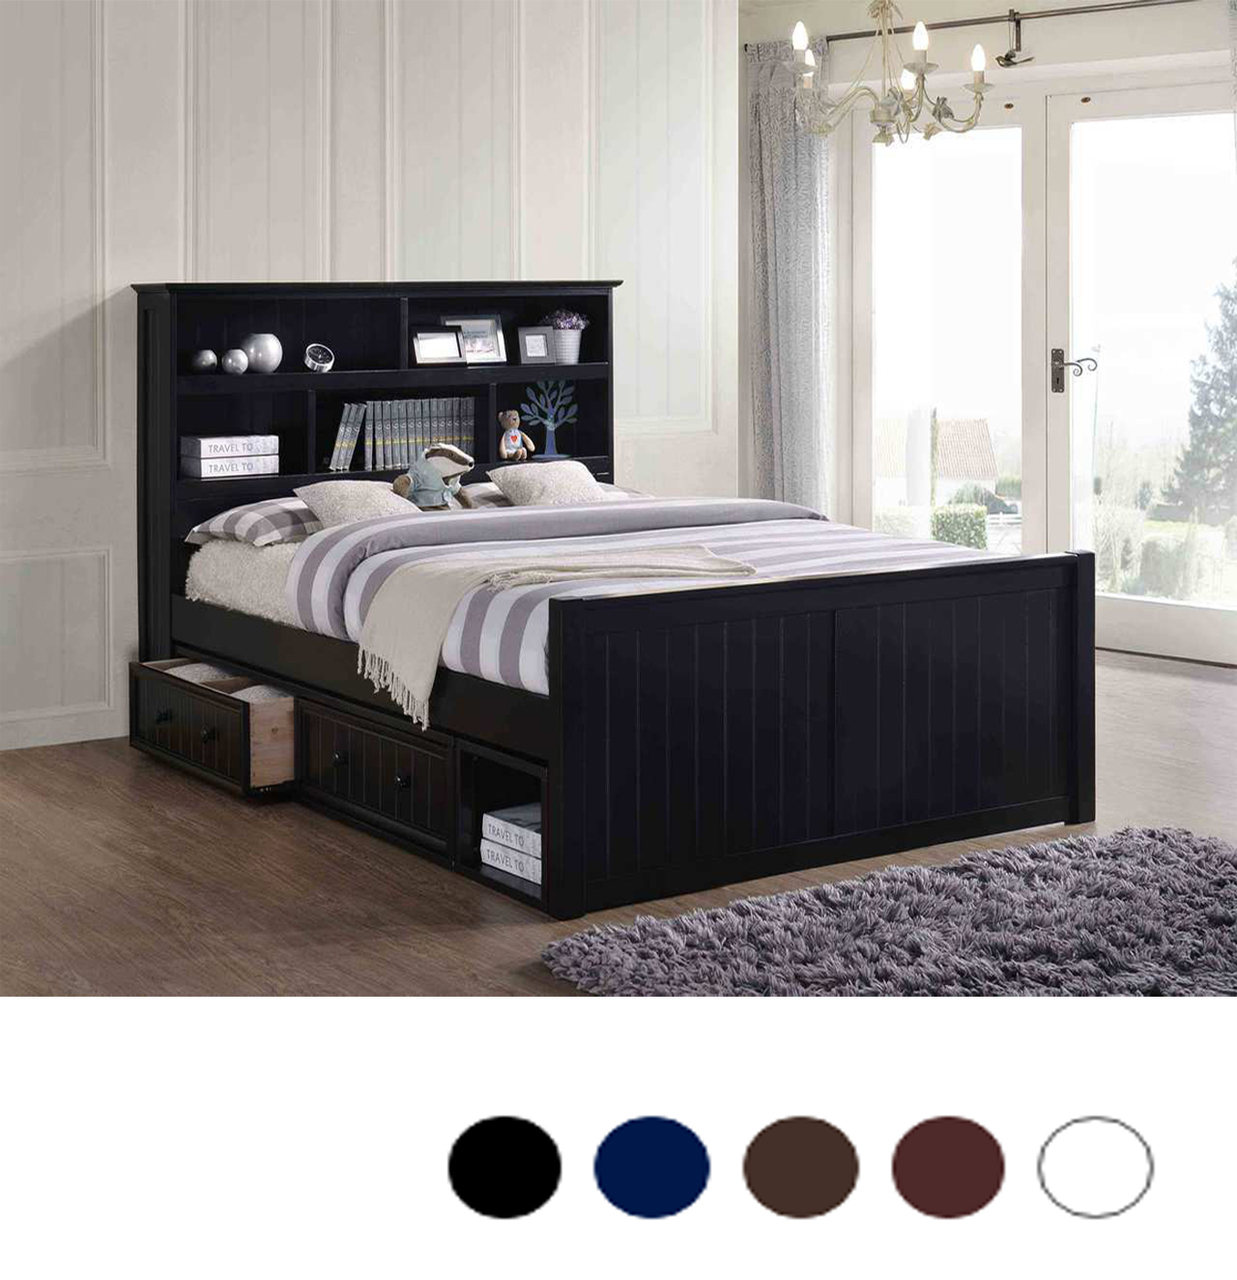 Dillon Wood Bead Board Queen Captains Bed